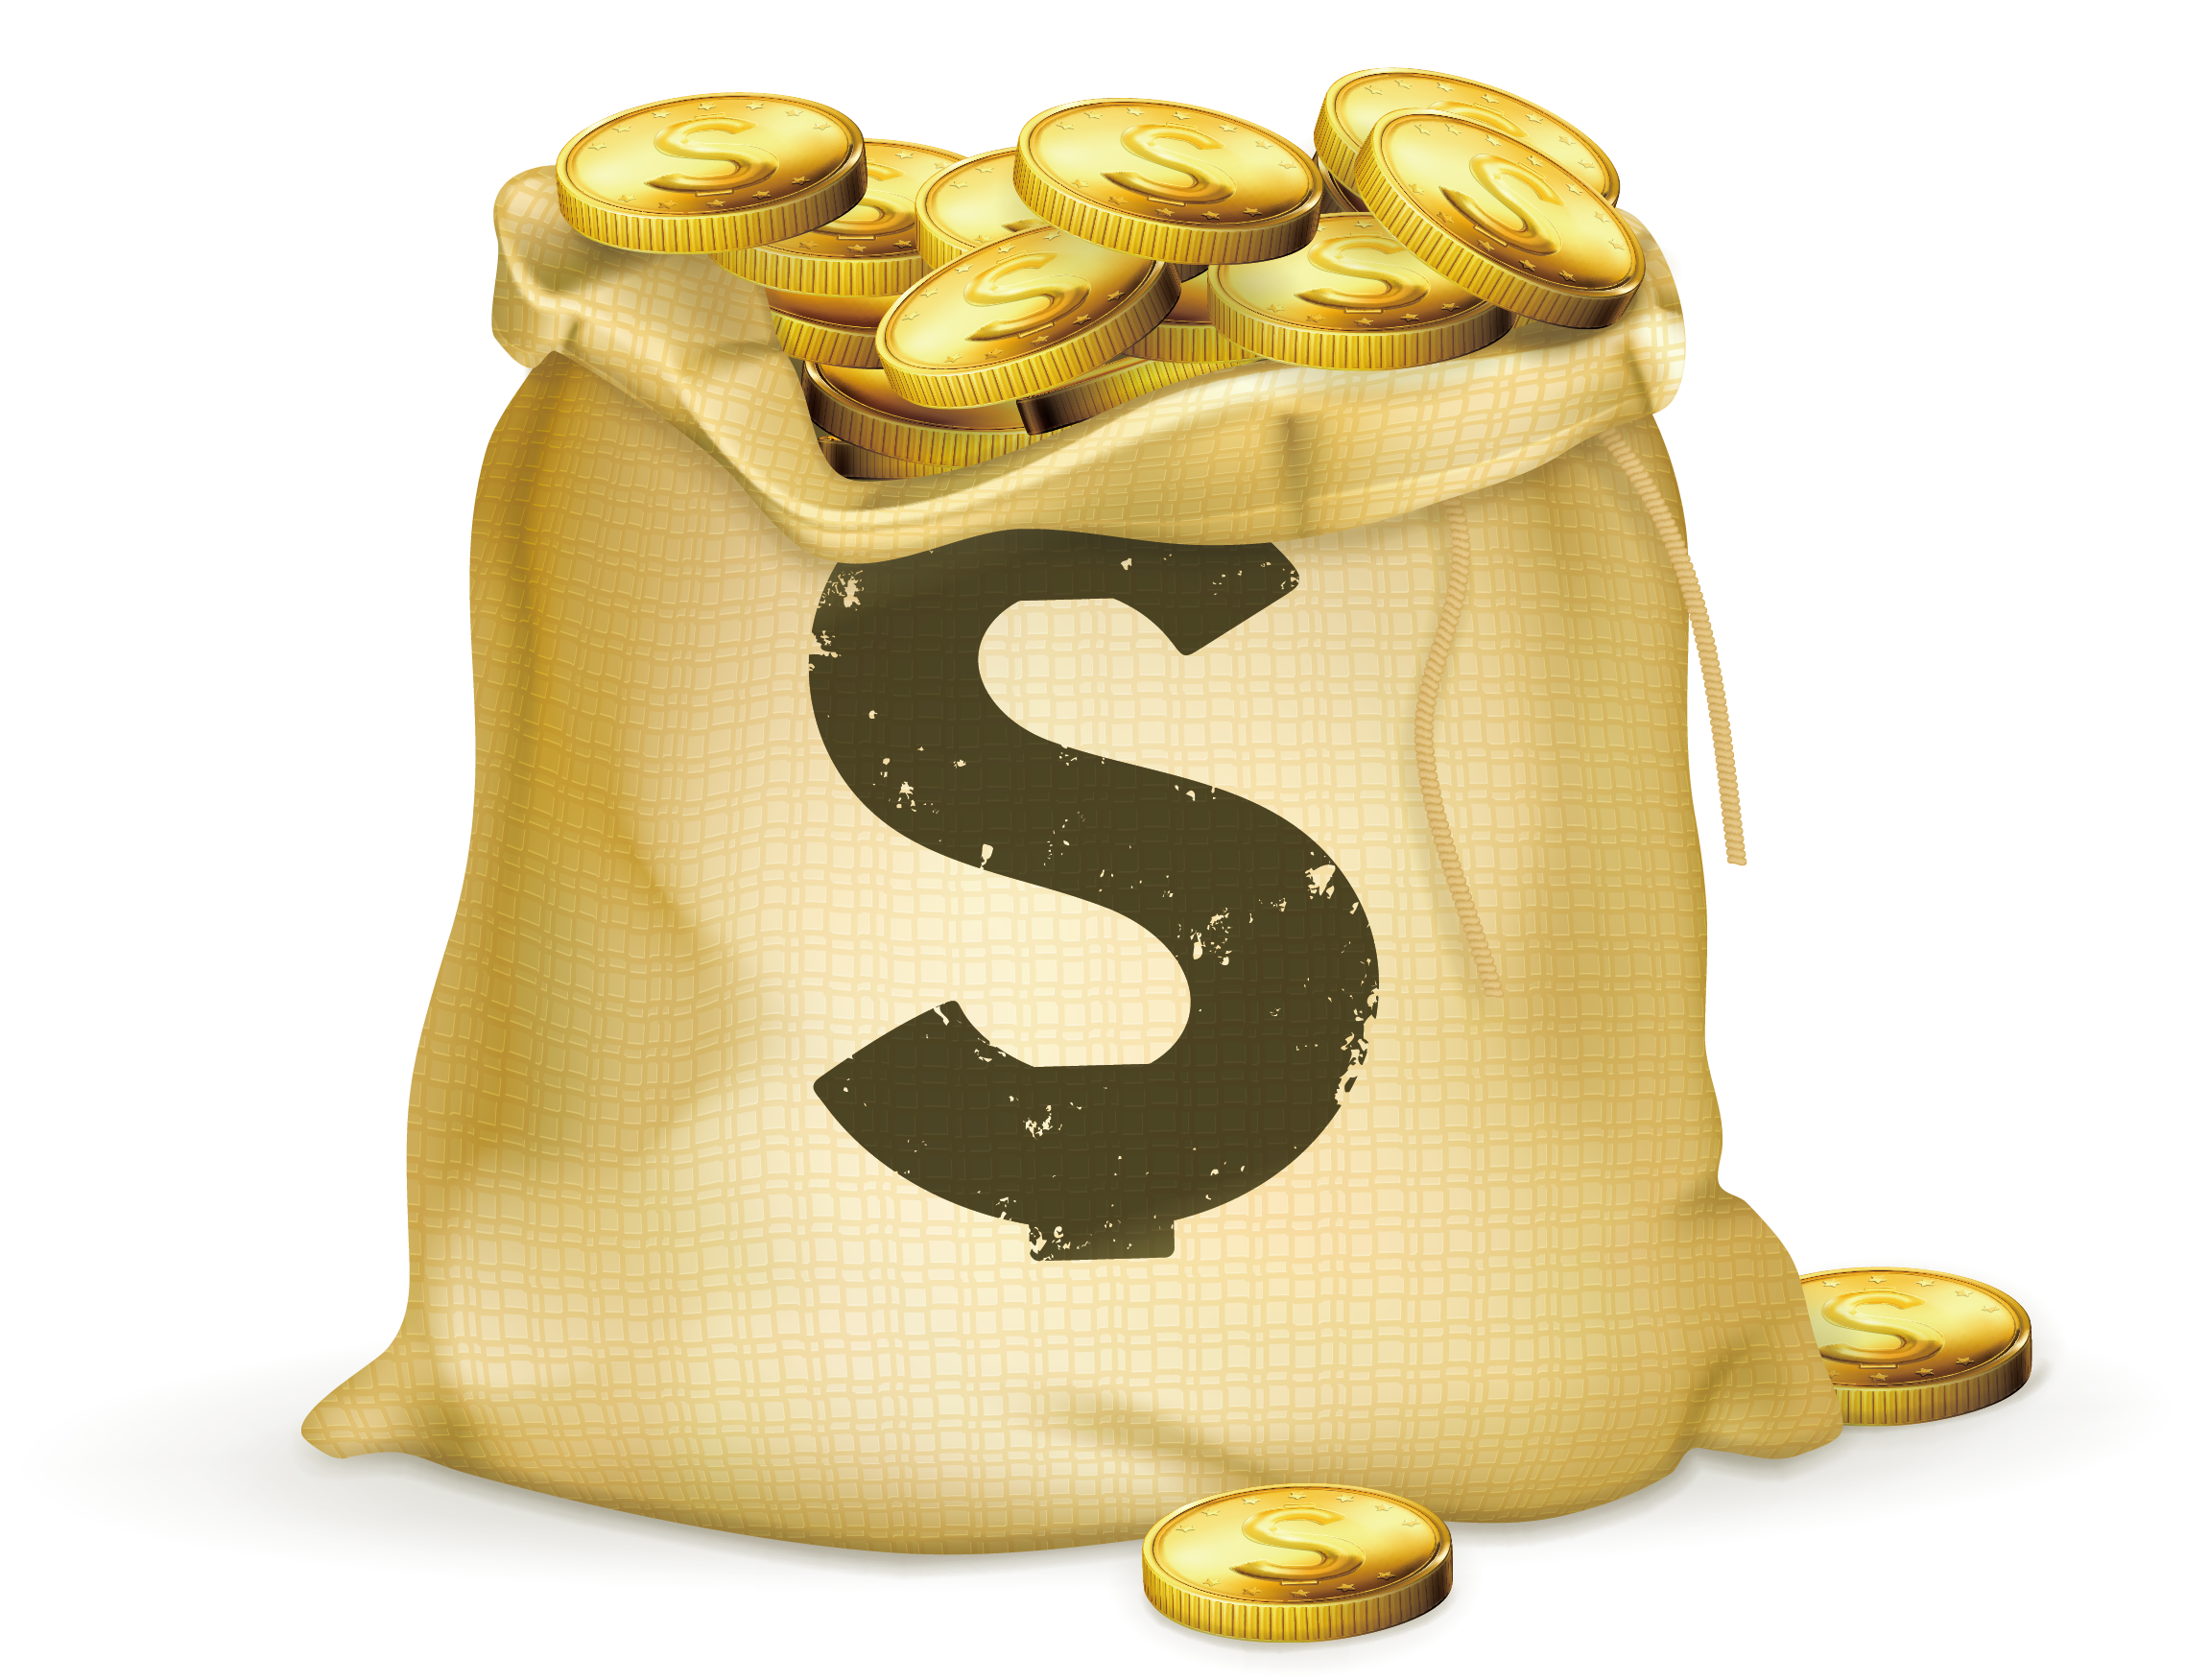 Gold coin stock photography. Coins clipart bag full money